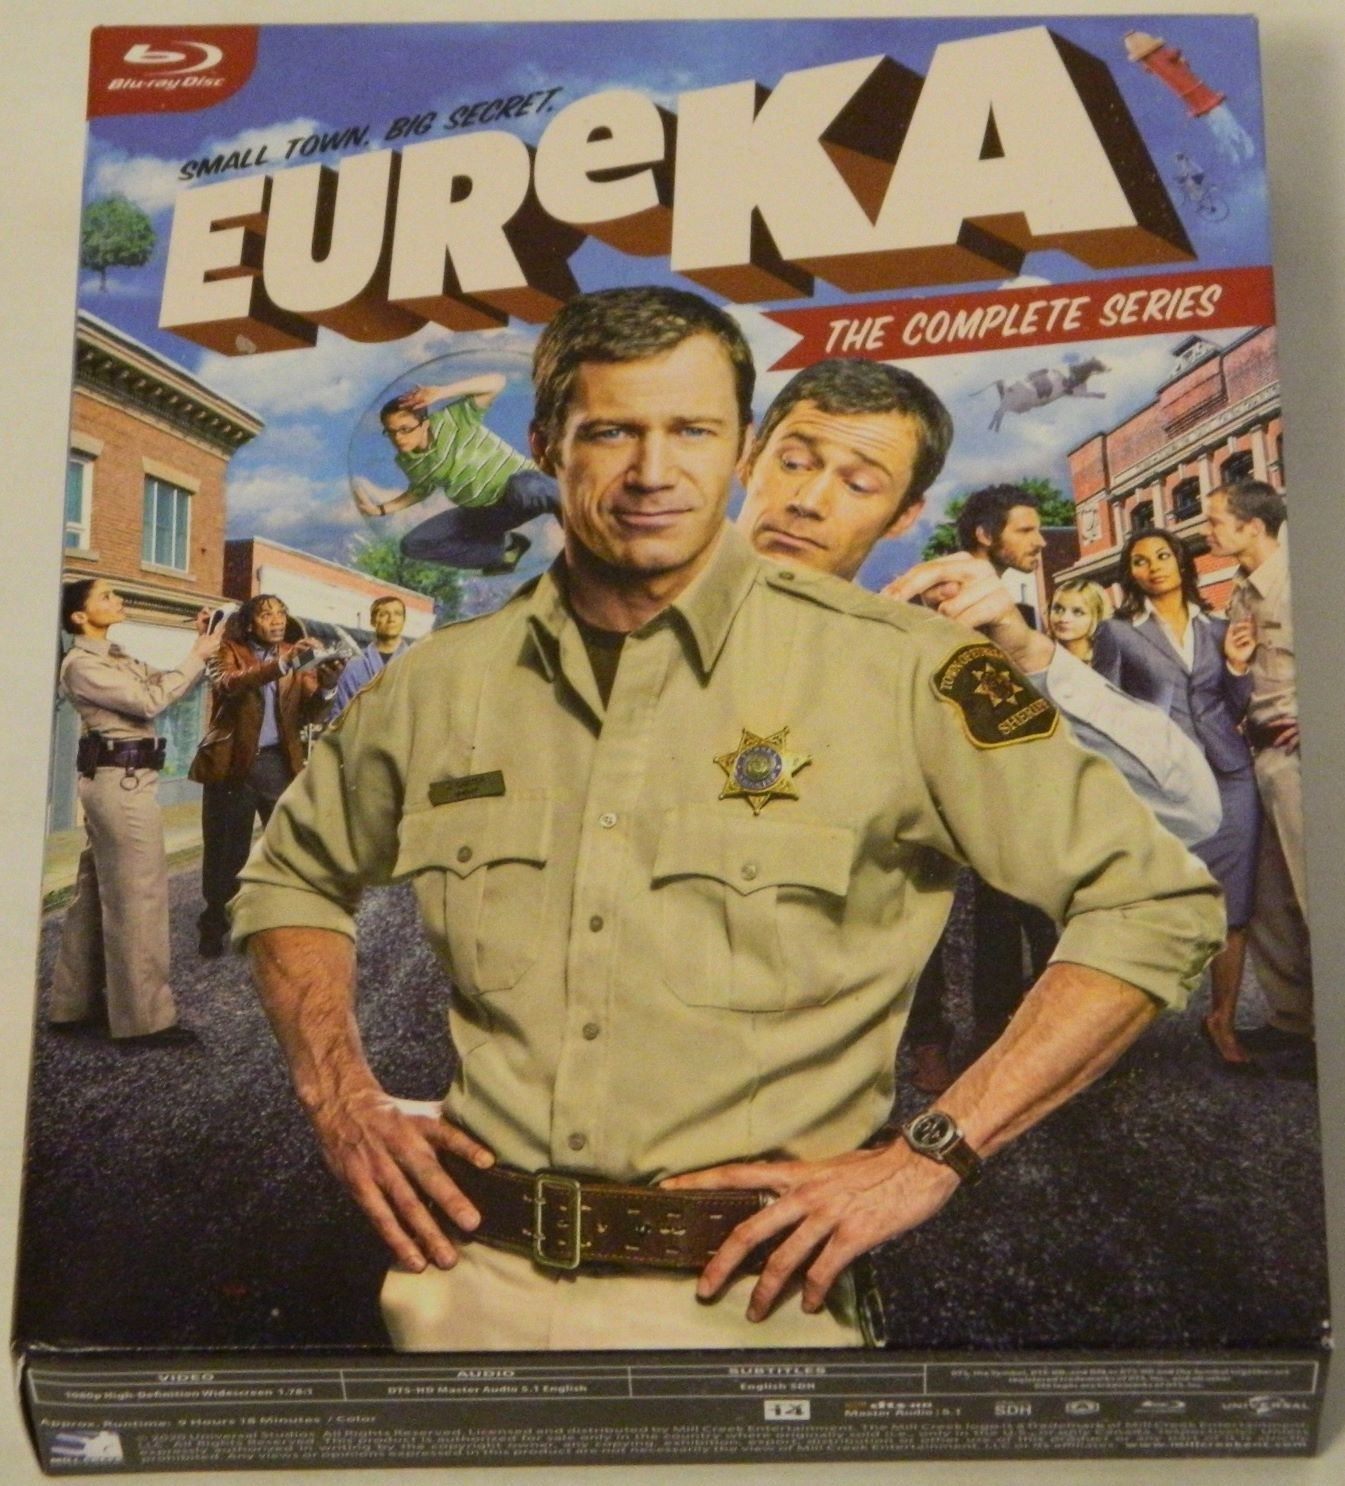 Eureka The Complete Series Blu-ray